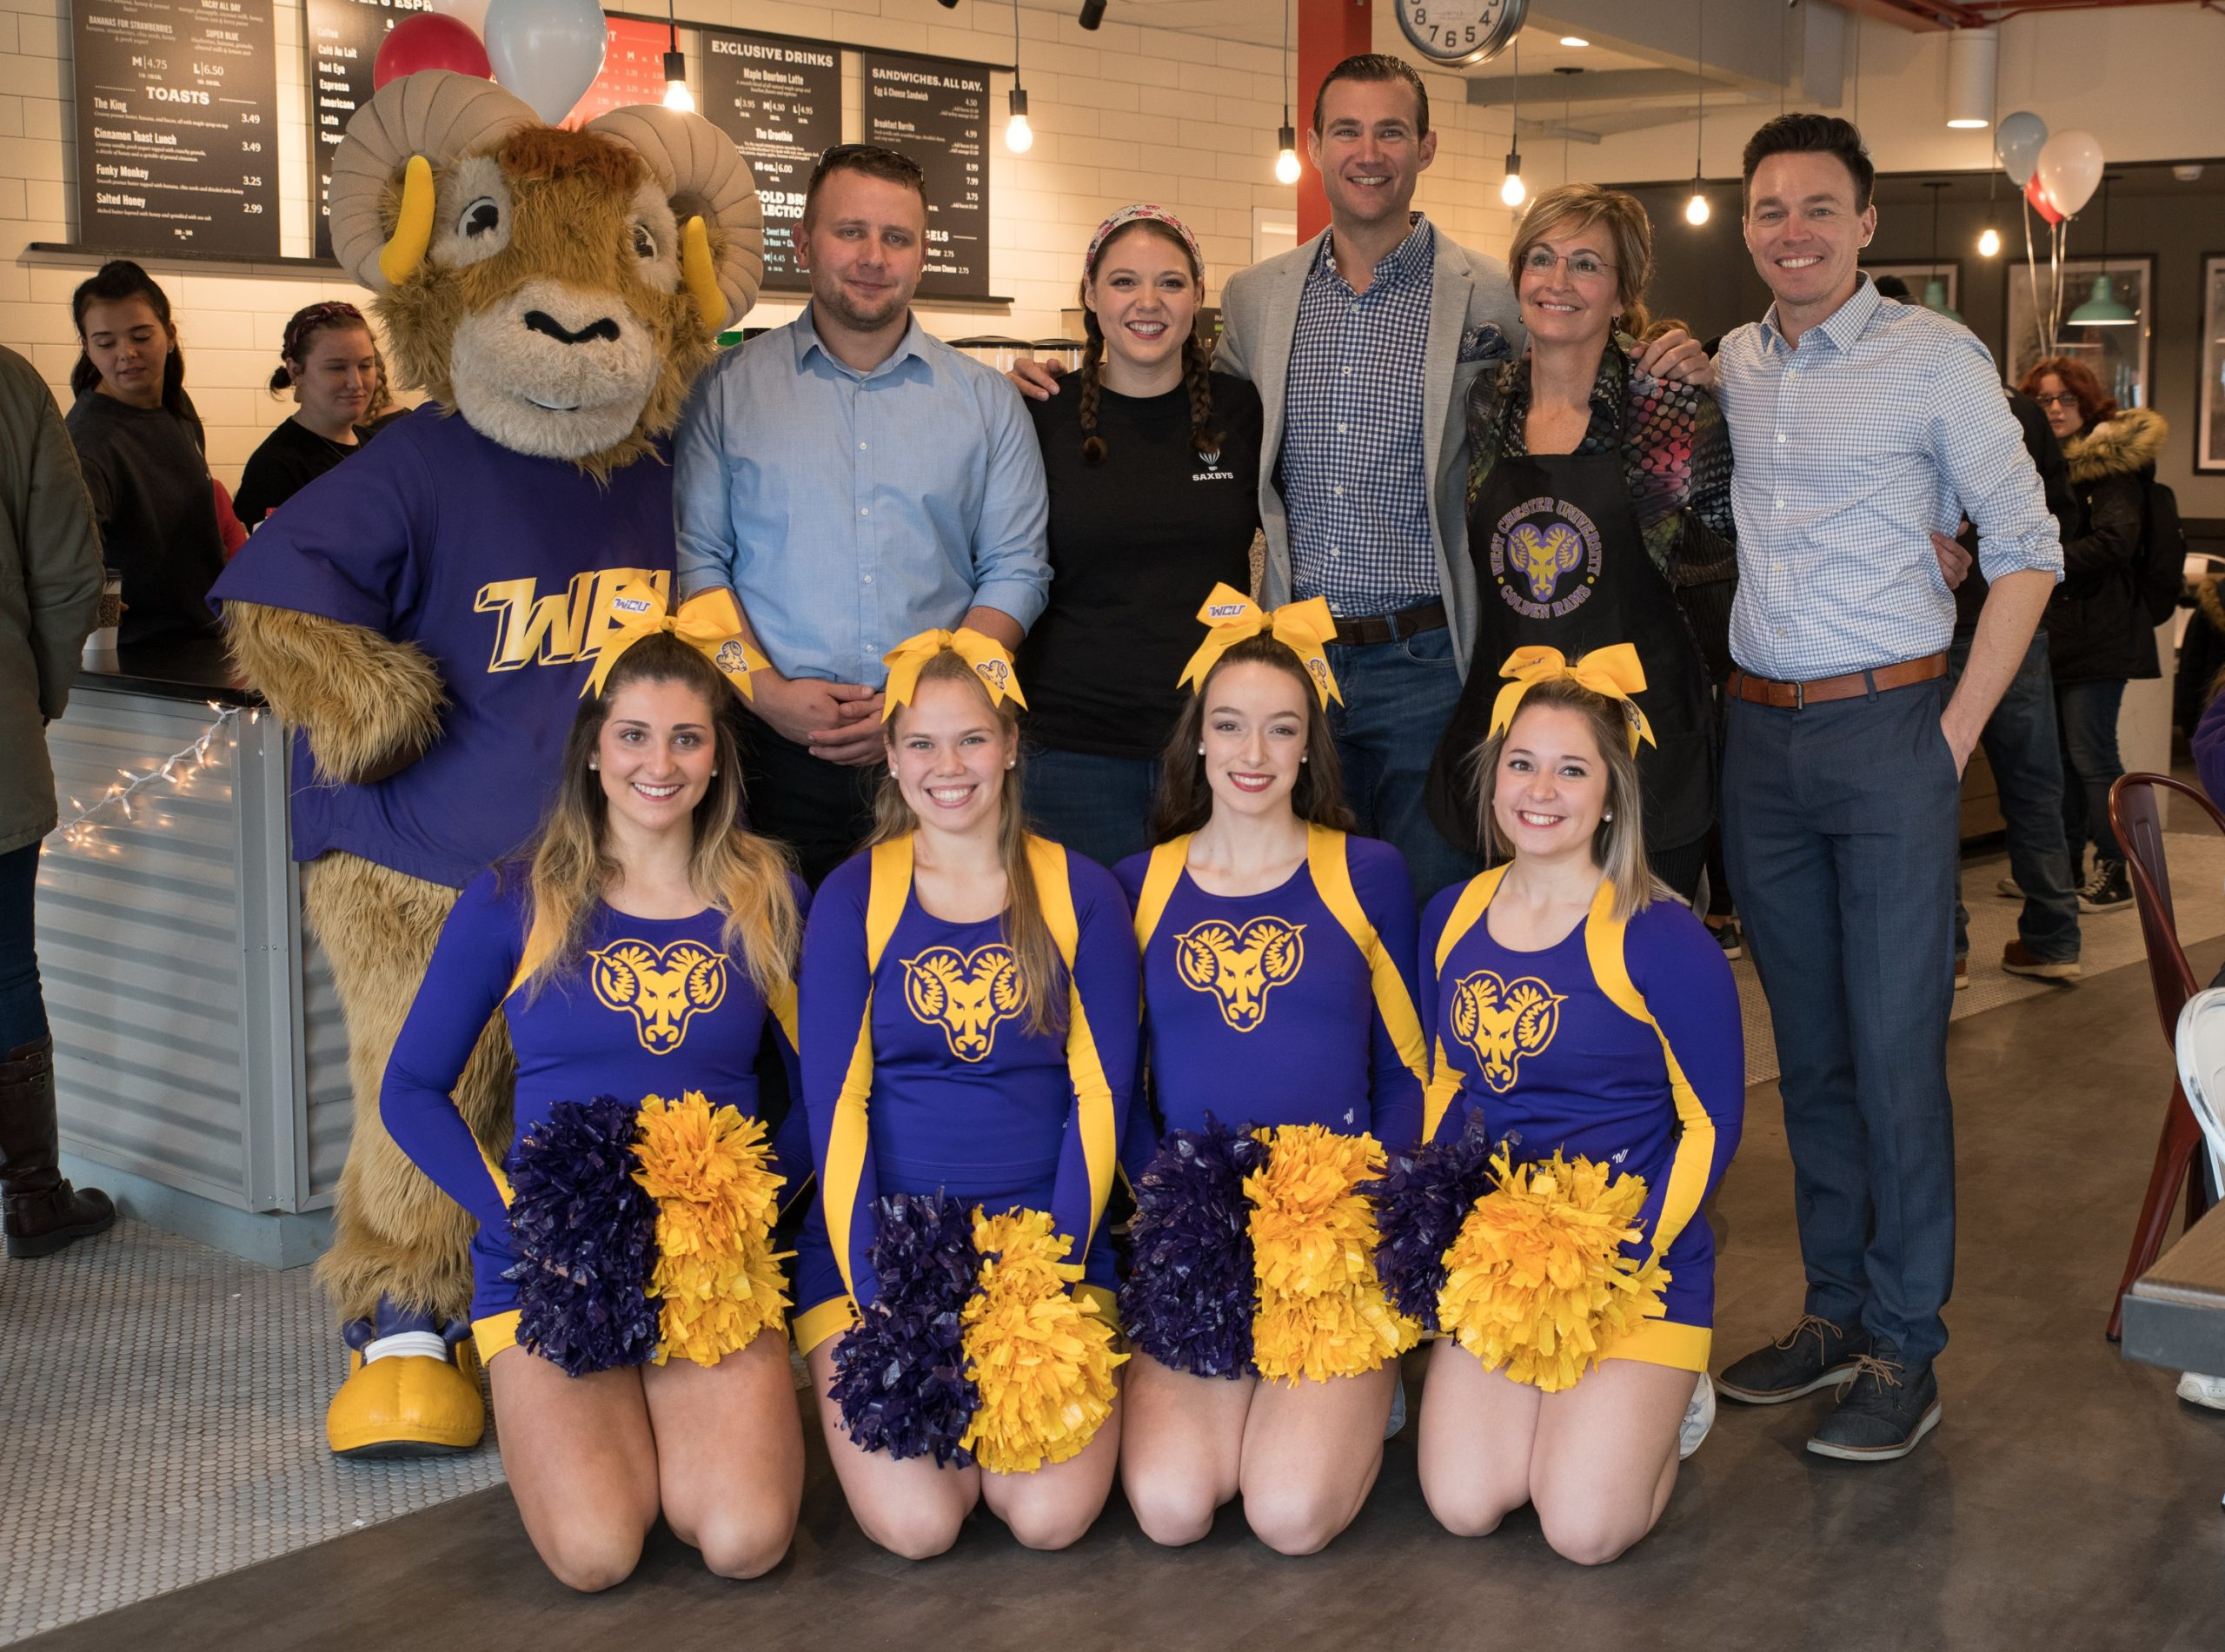 WCU President, Celebrity Baristas Celebrate Giving Tuesday at Saxbys Café on Campus